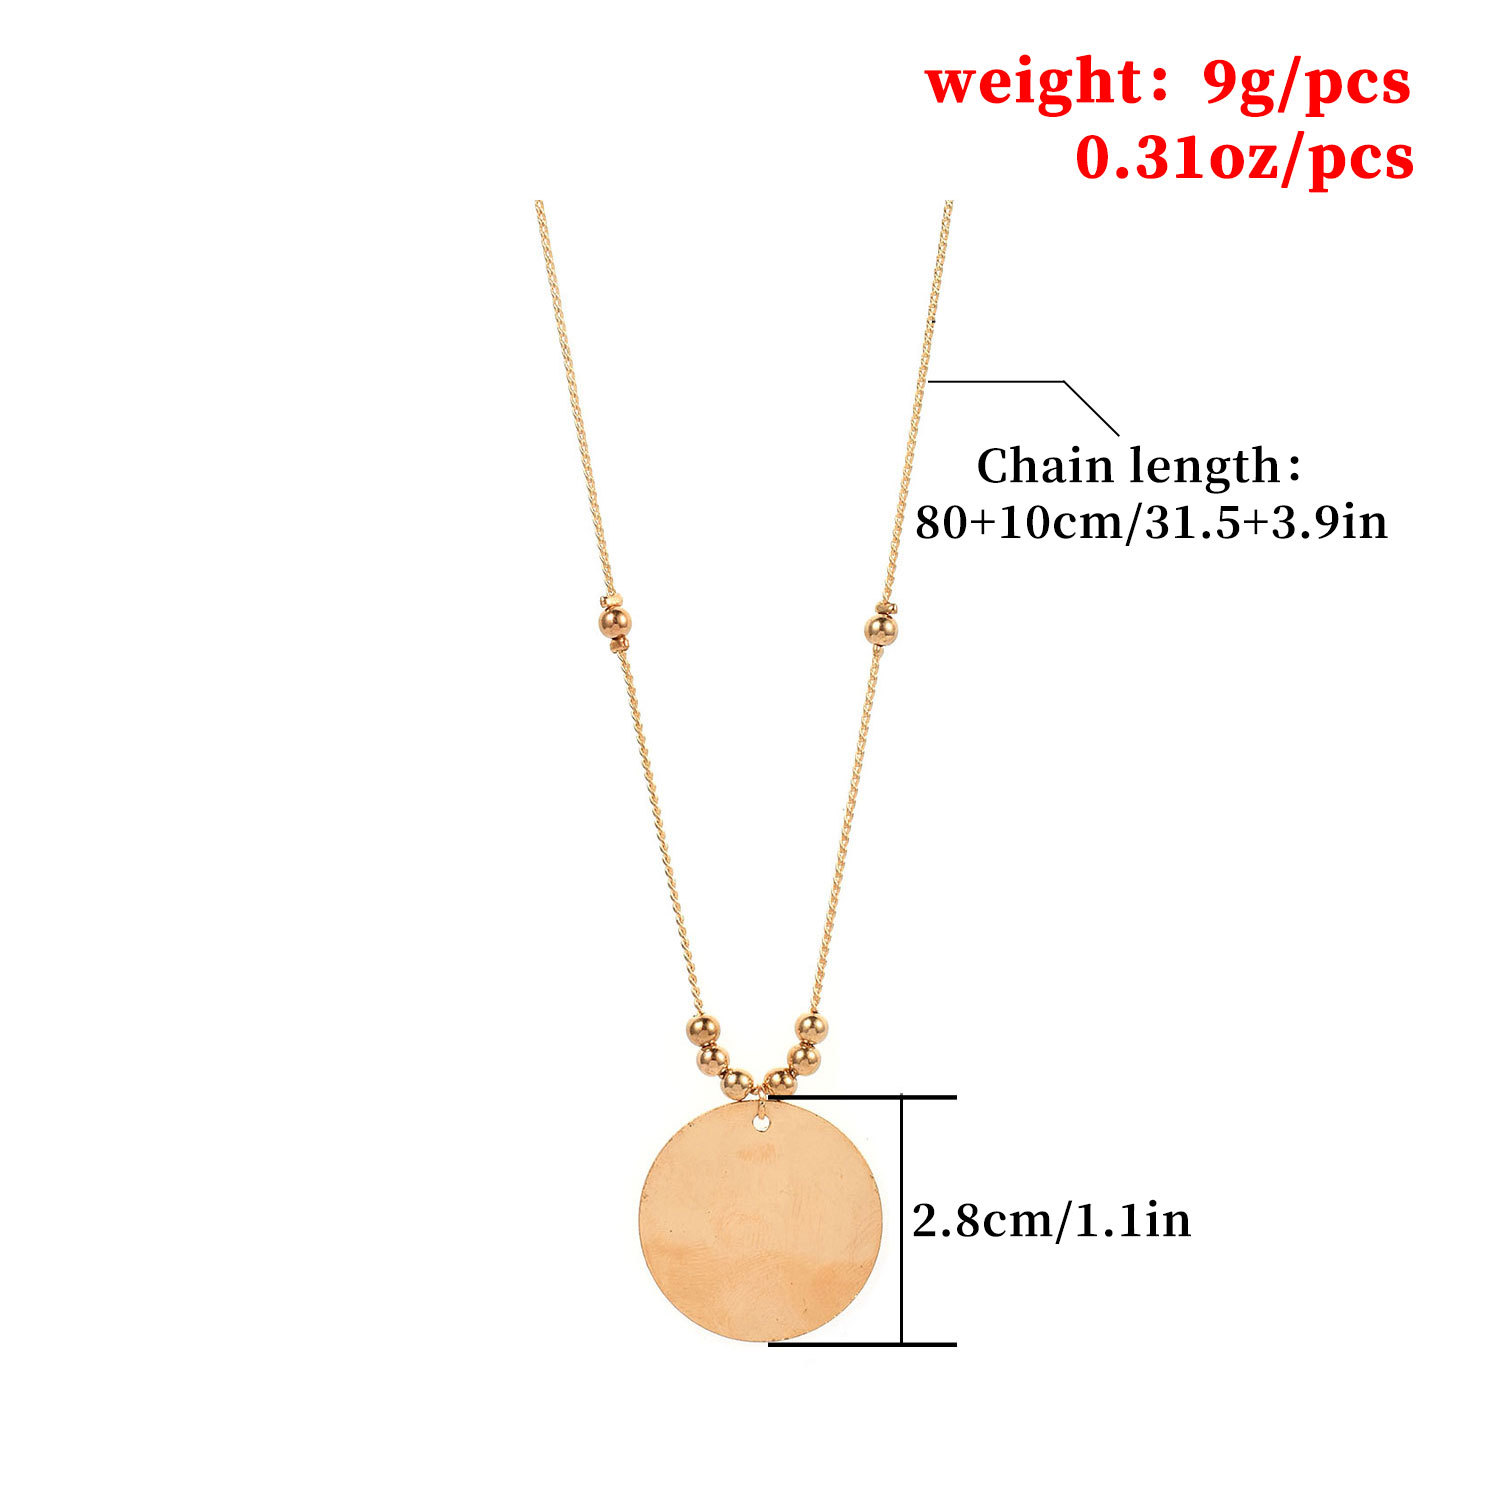 Trendy Street Round Sequins Beads Tassel Long Chain Necklace Pendant Ladies Party Elegant Clavicle Statement Necklaces for Women